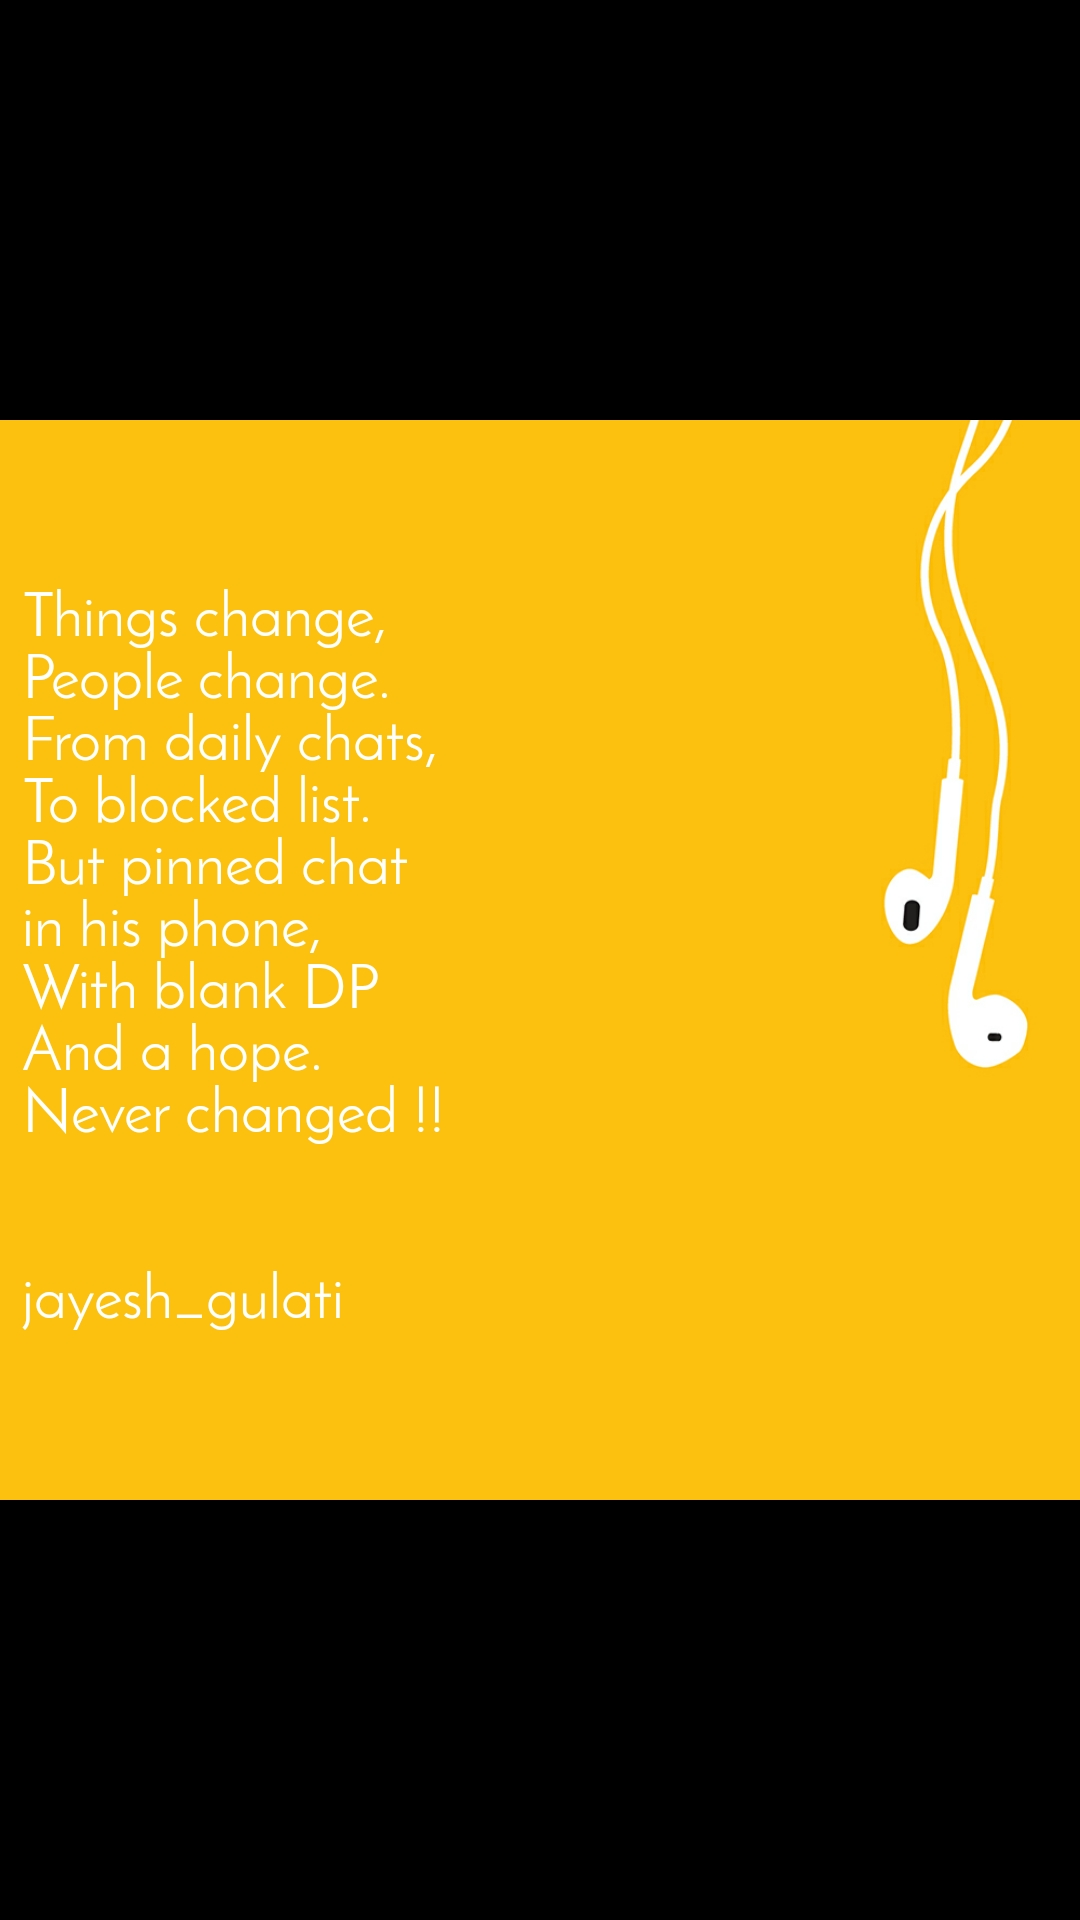 Things change, People change. From daily chats, To blocked list. But pinned chat  in his phone, With blank DP And a hope. Never changed !!   jayesh_gulati